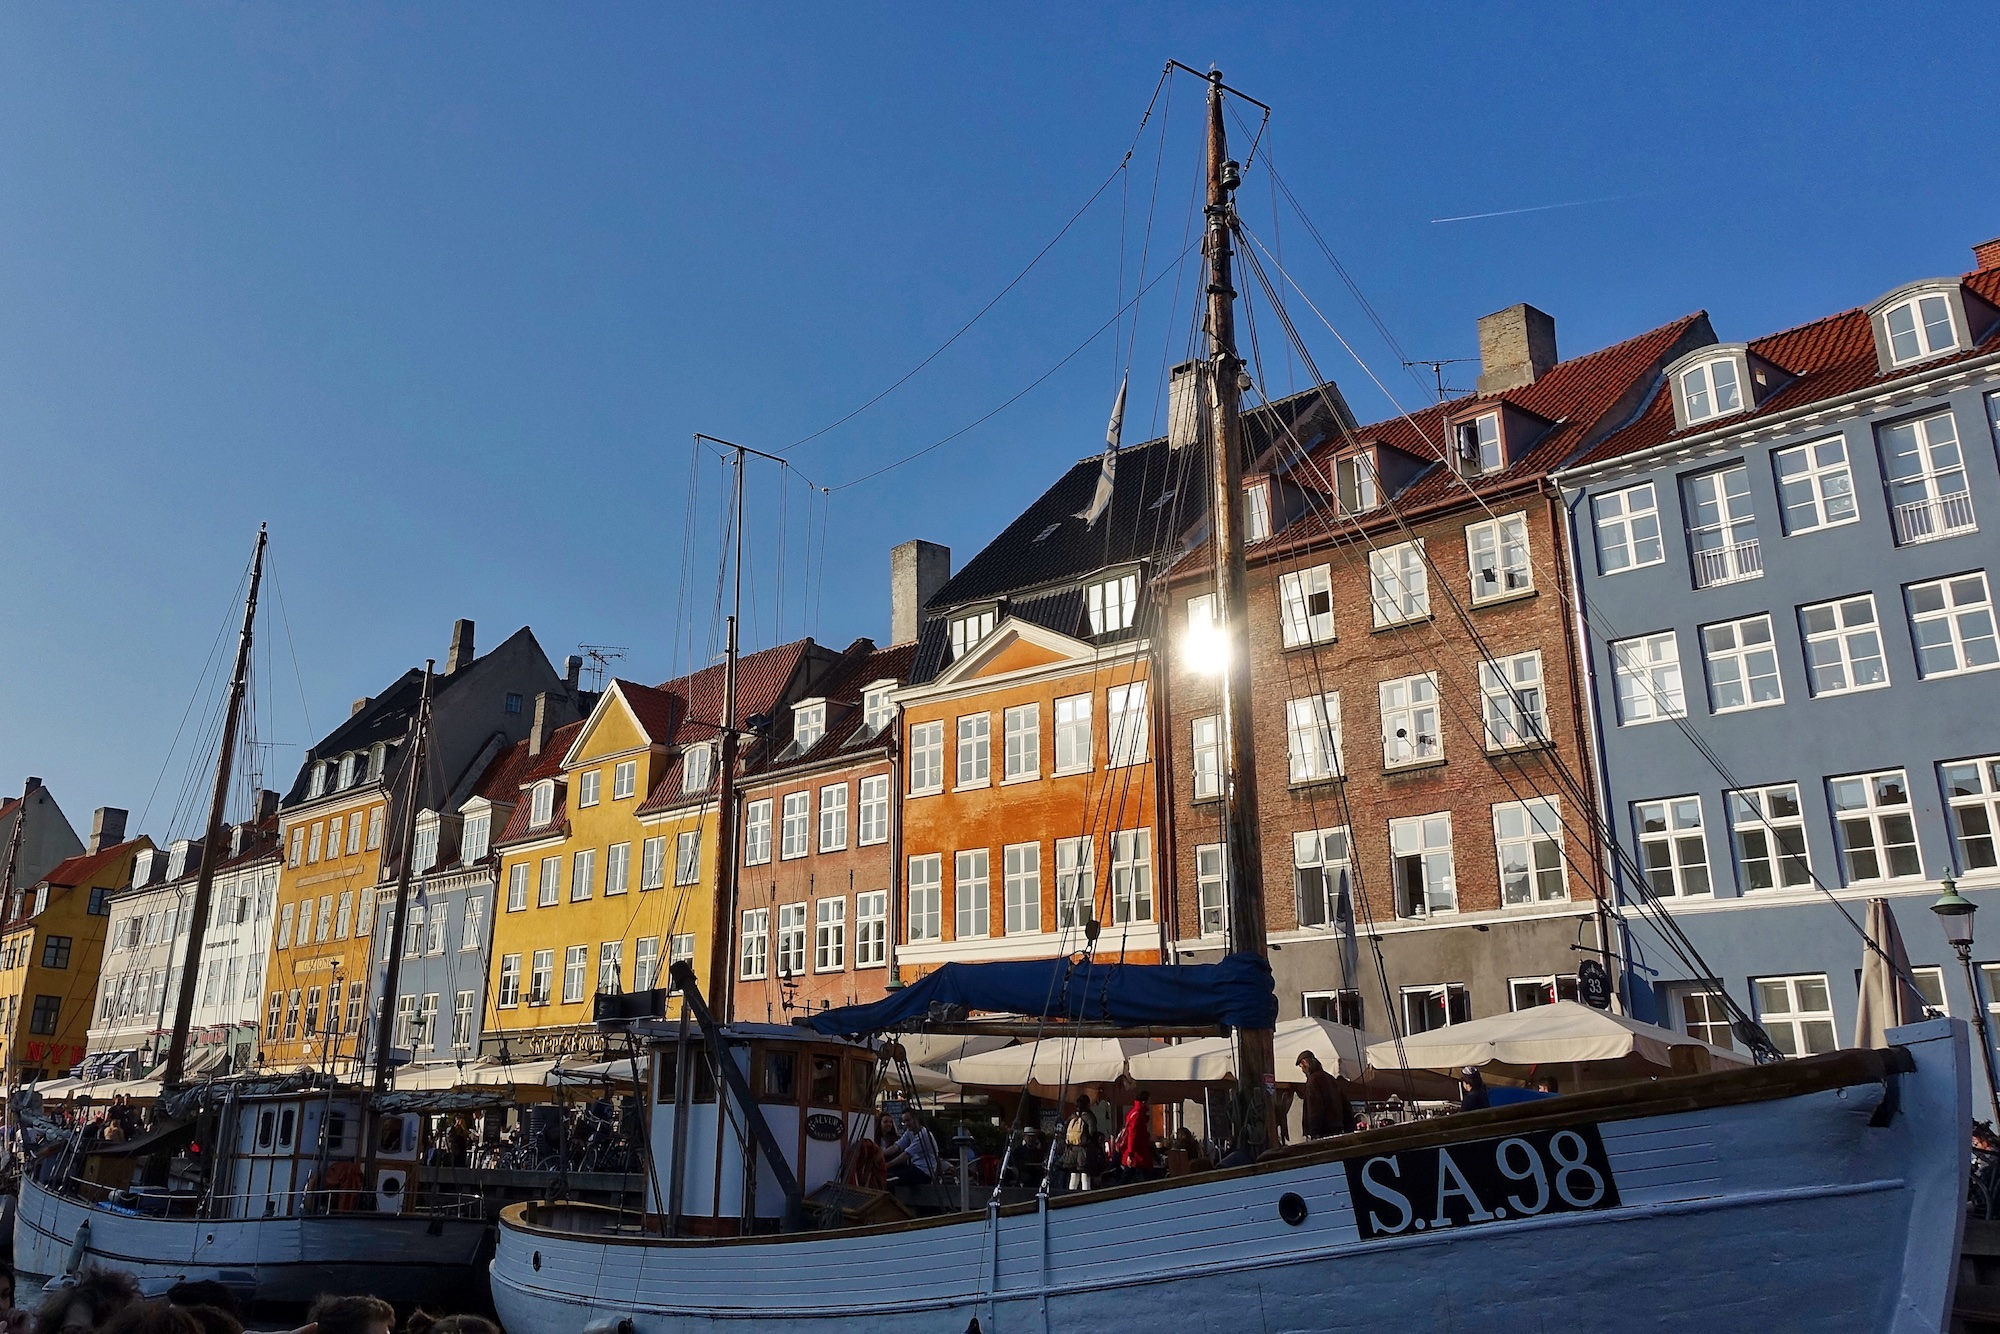 Admiring the Vibrant 17th- and 18th-Century Homes Along the NyHavn Canal